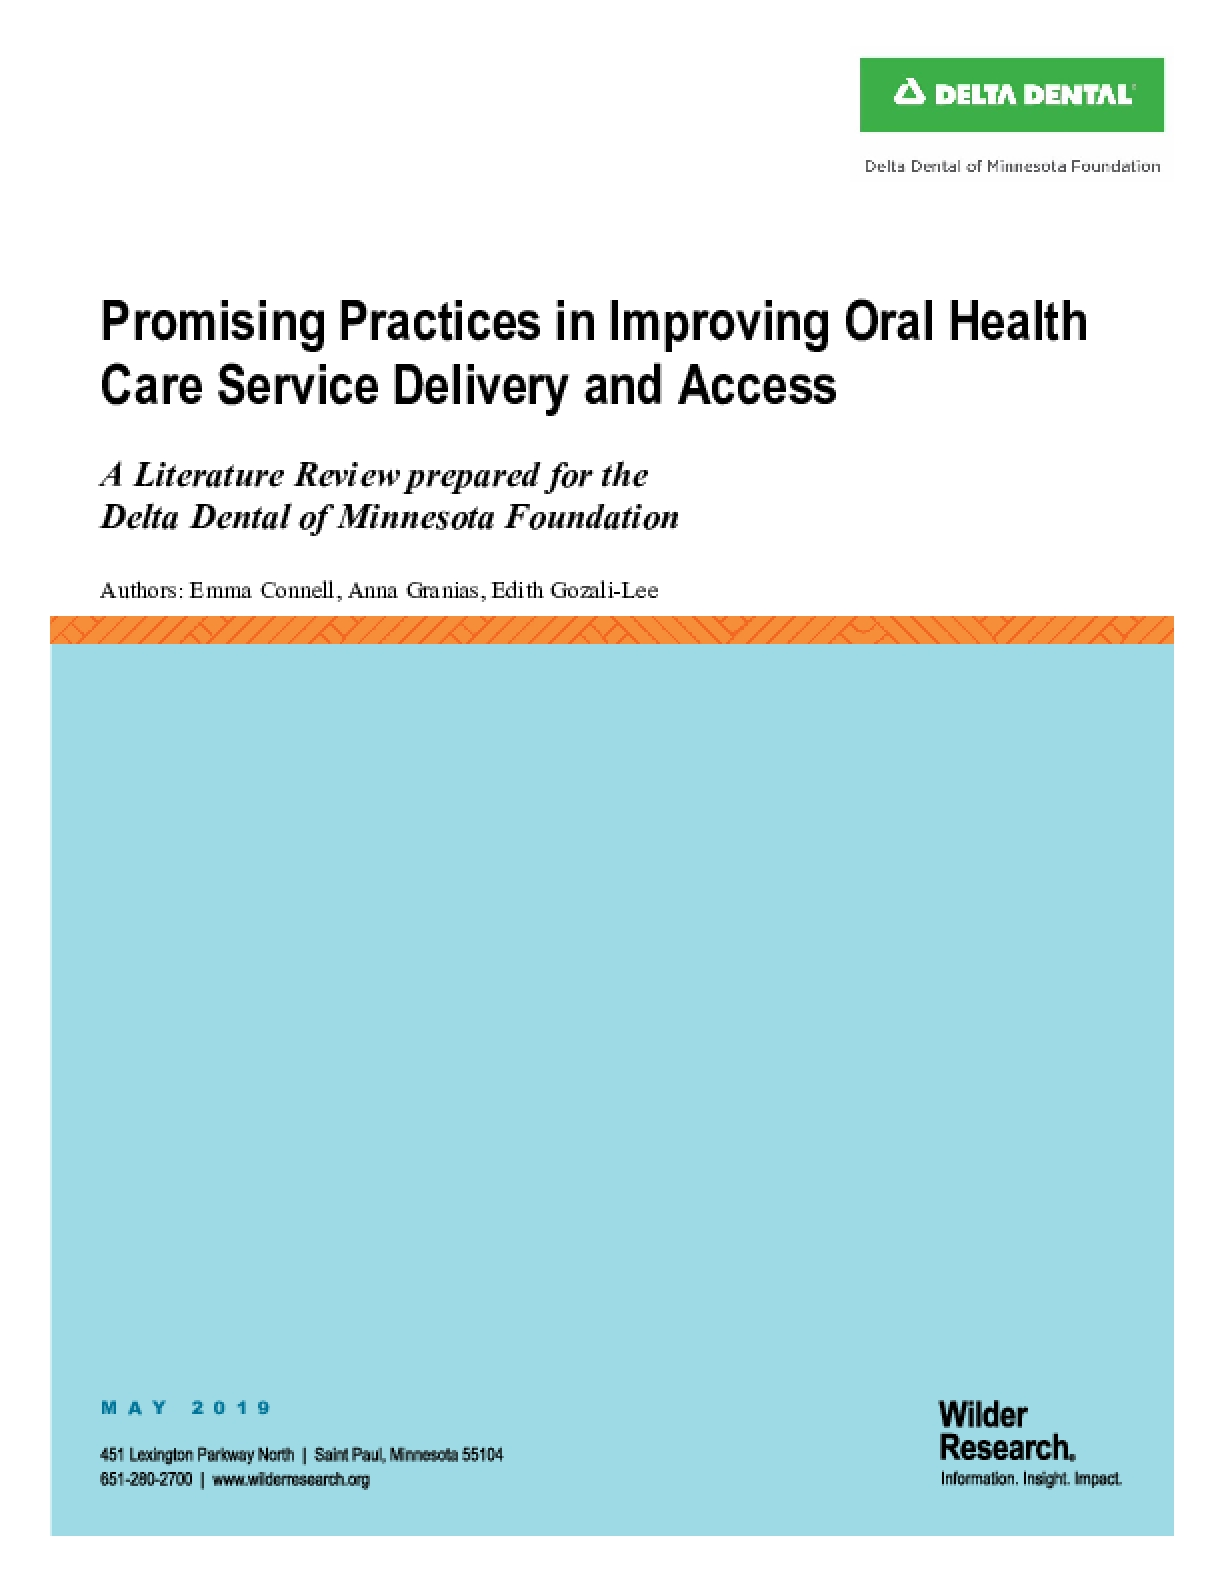 Promising Practices in Improving Oral Health: Care Service Delivery and Access, A Literature Review Prepared for the Delta Dental of Minnesota Foundation